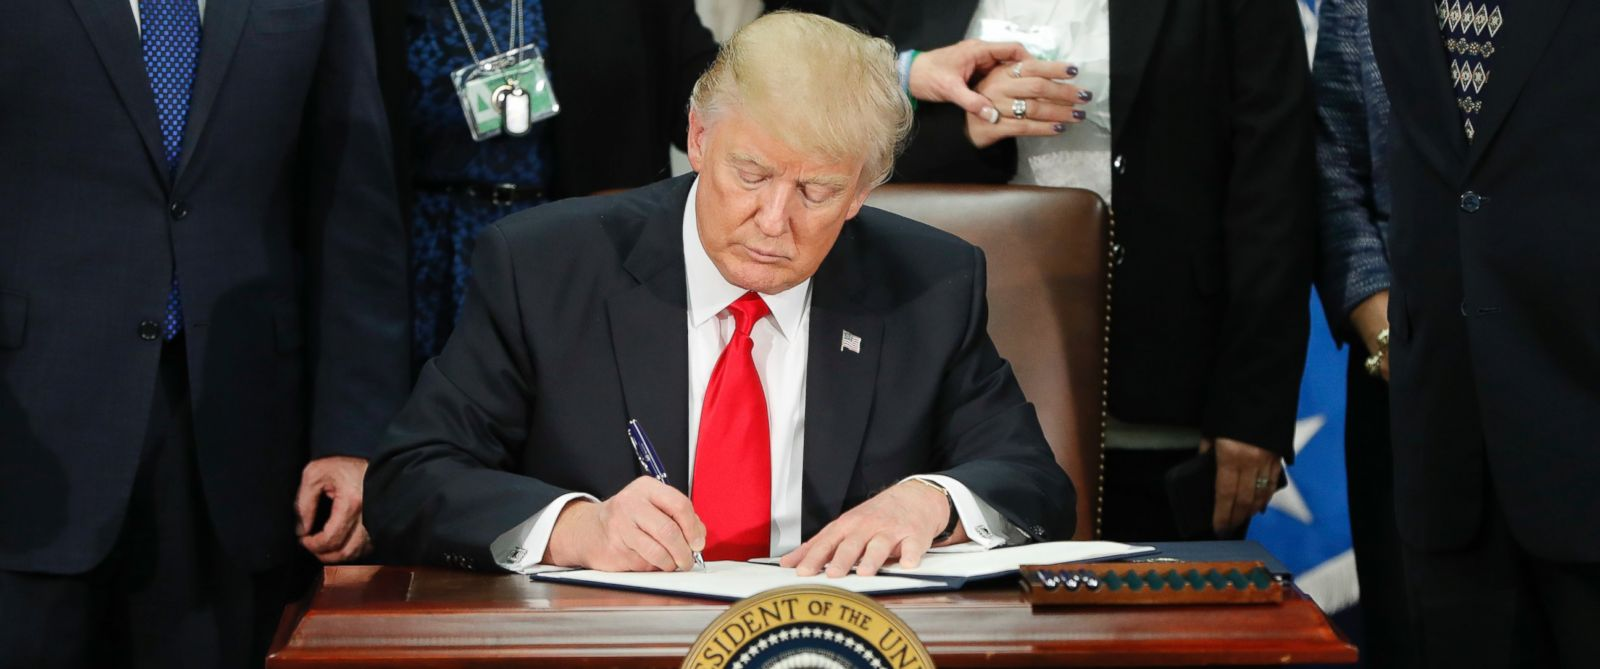 Image result for trump immigration executive order signing